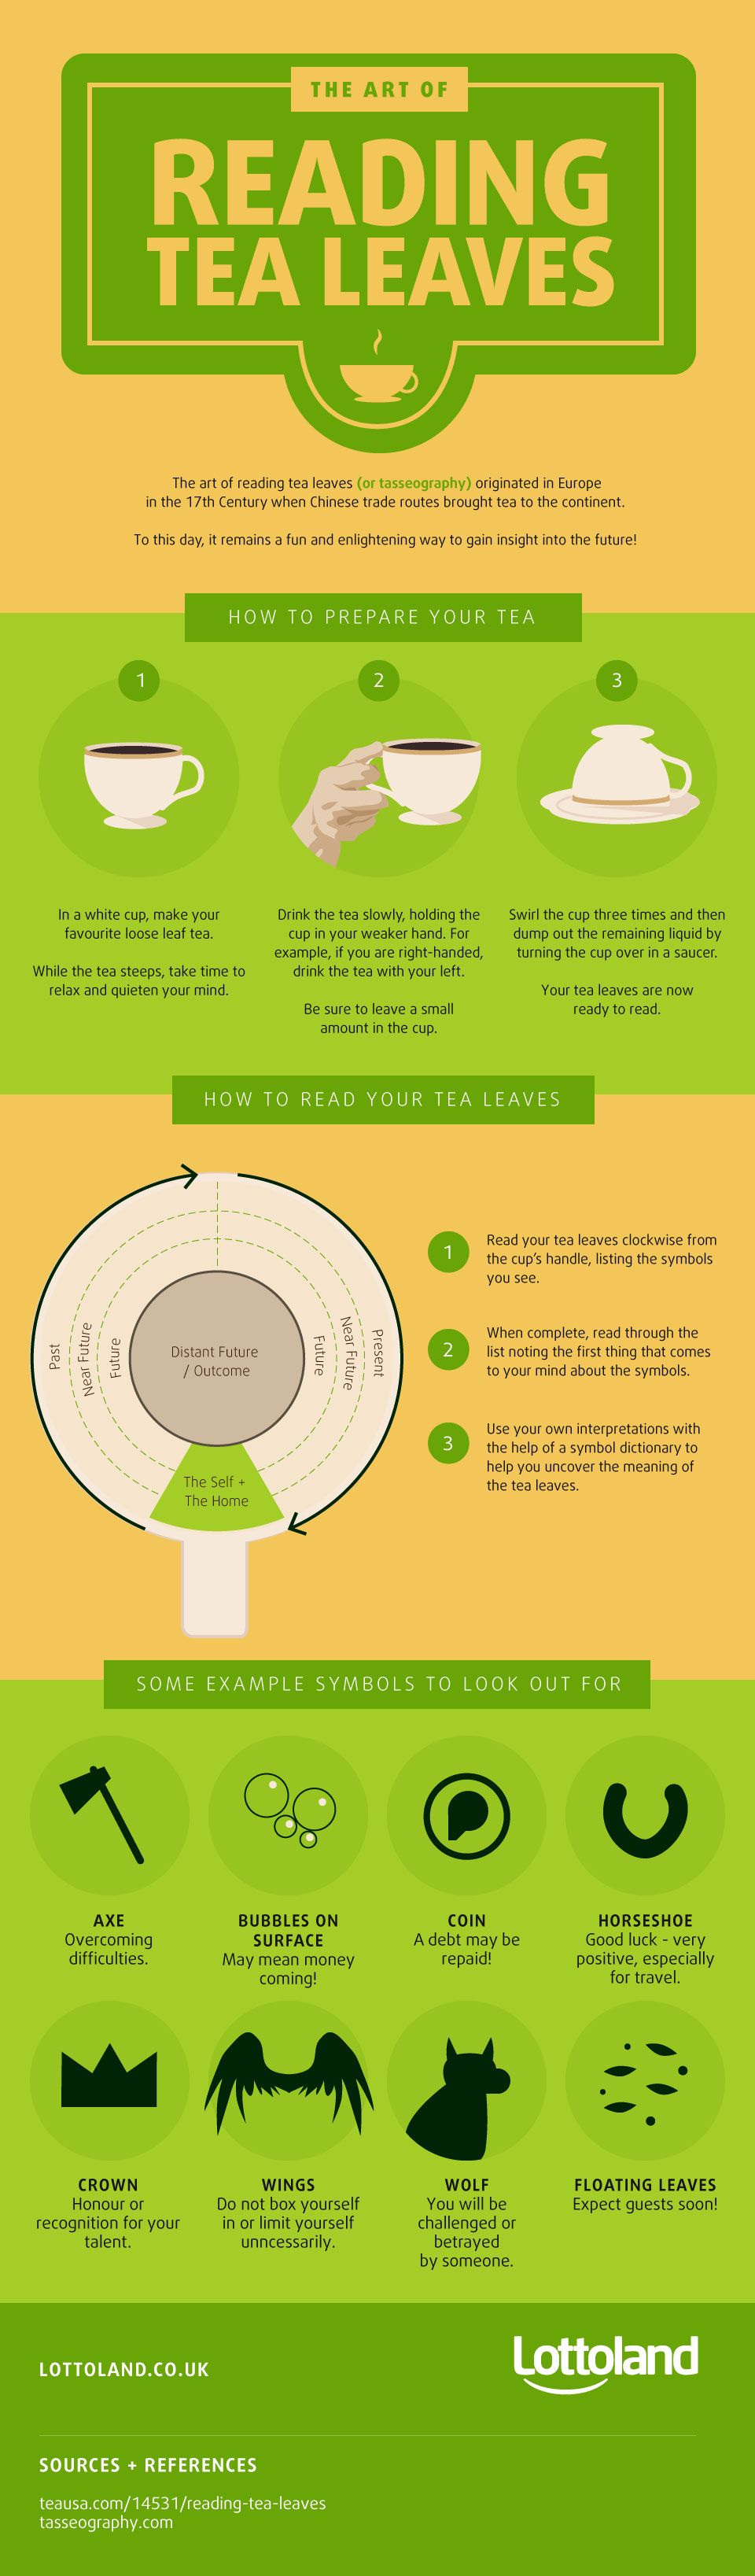 How to read tea leaves 101 kitchen witch pinterest leaves how to read tea leaves 101 buycottarizona Image collections